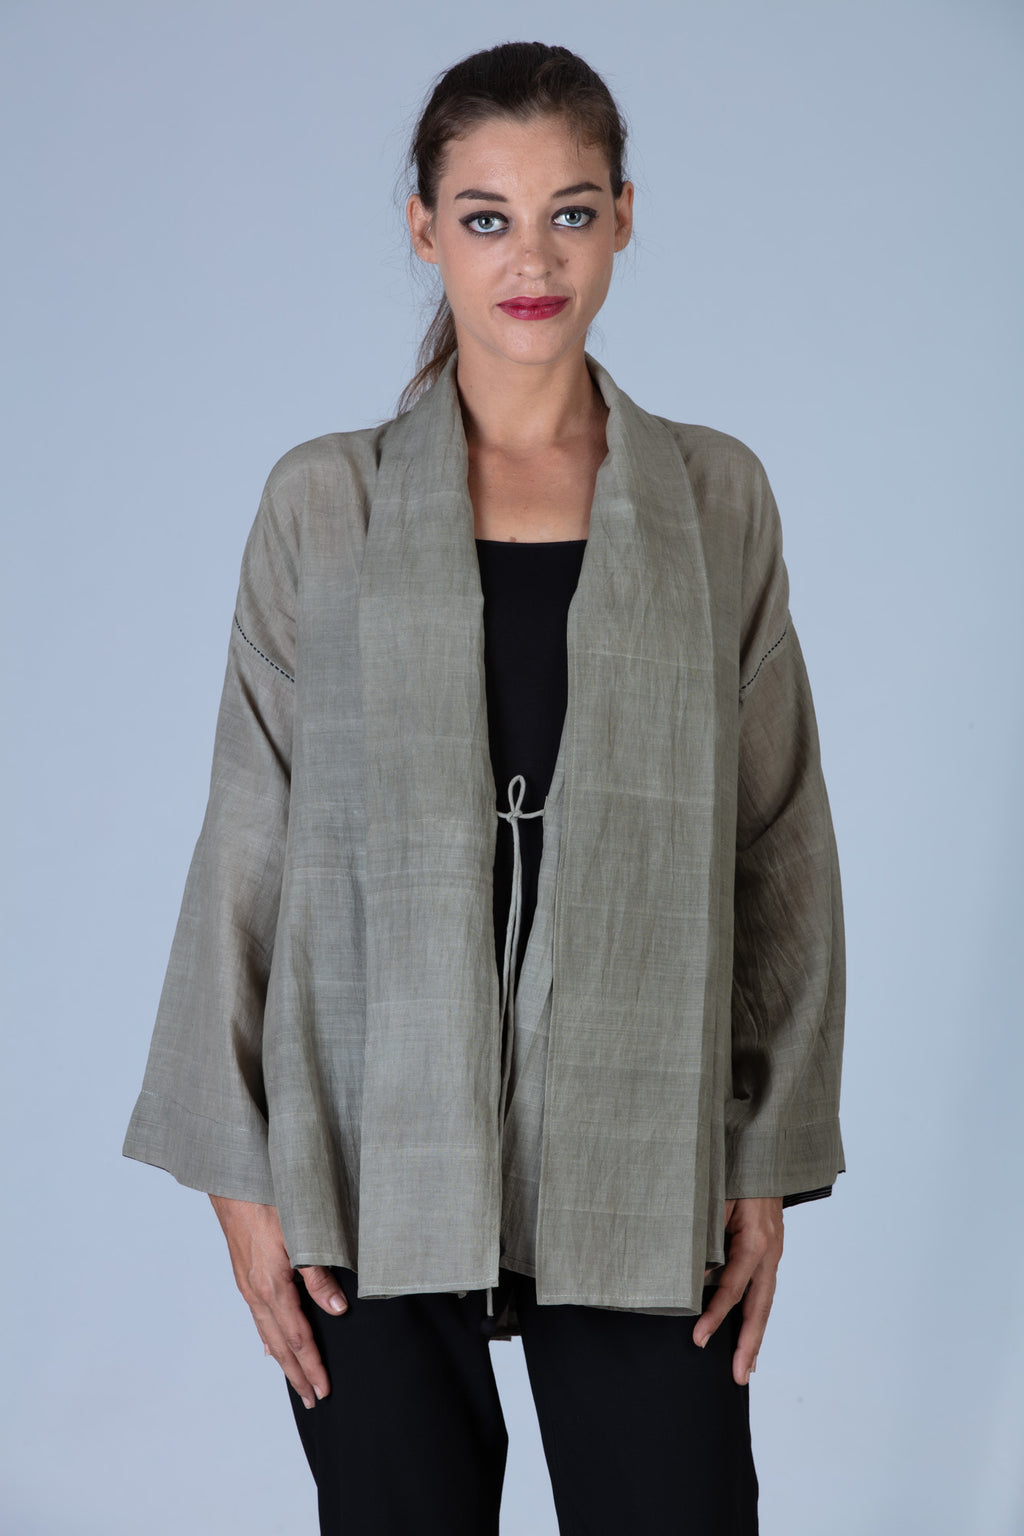 Tulsi dyed Organic cotton Jacket - MITHILA - Upasana Design Studio